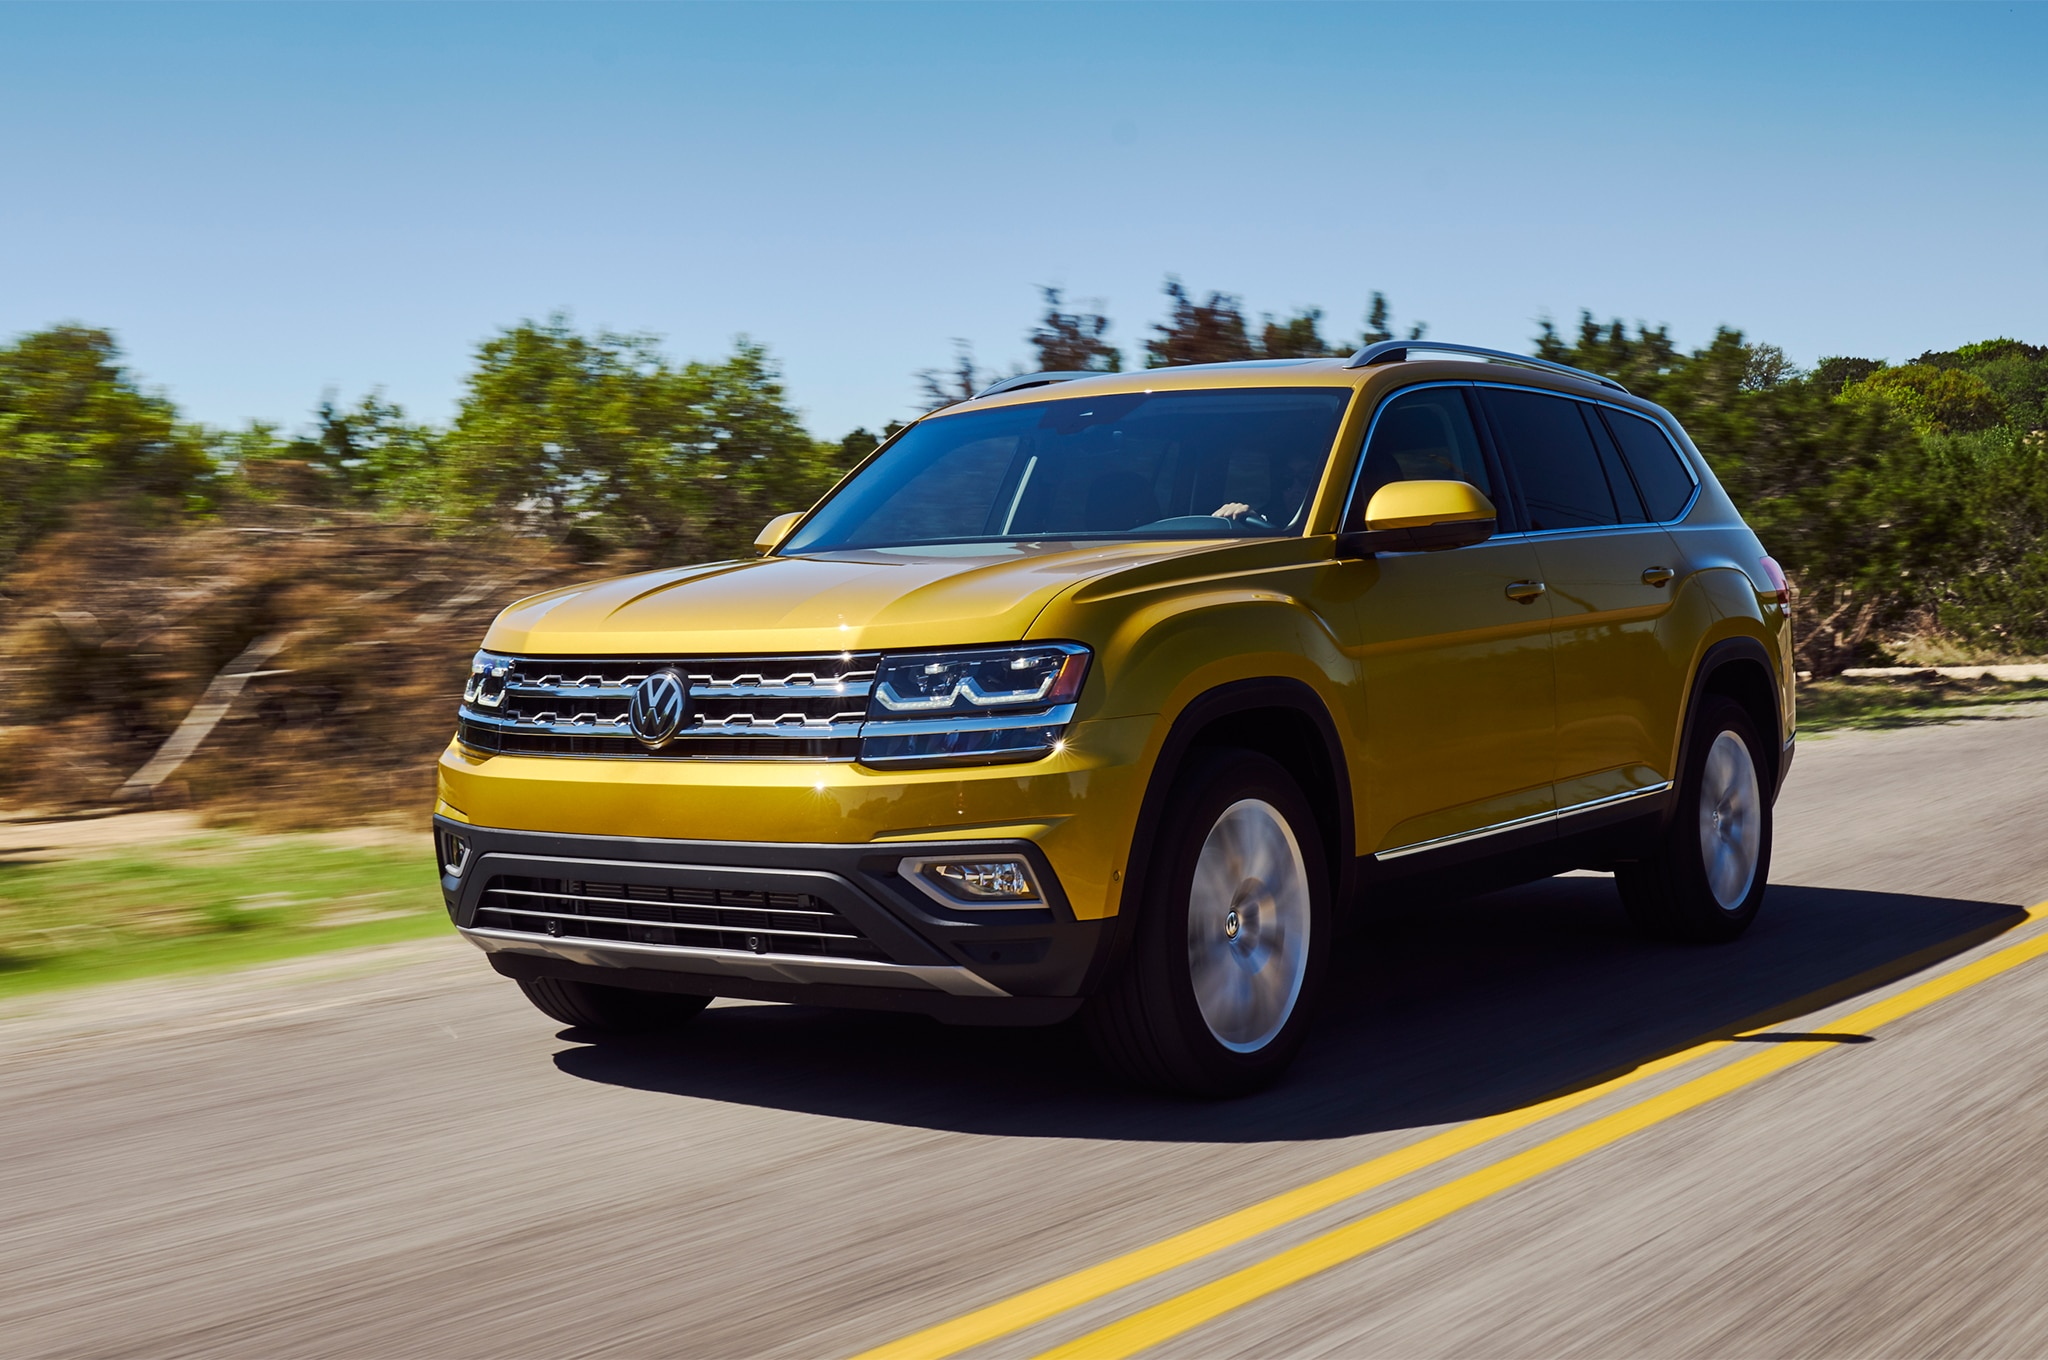 2018 Volkswagen Atlas Front Three Quarter In Motion 07 7